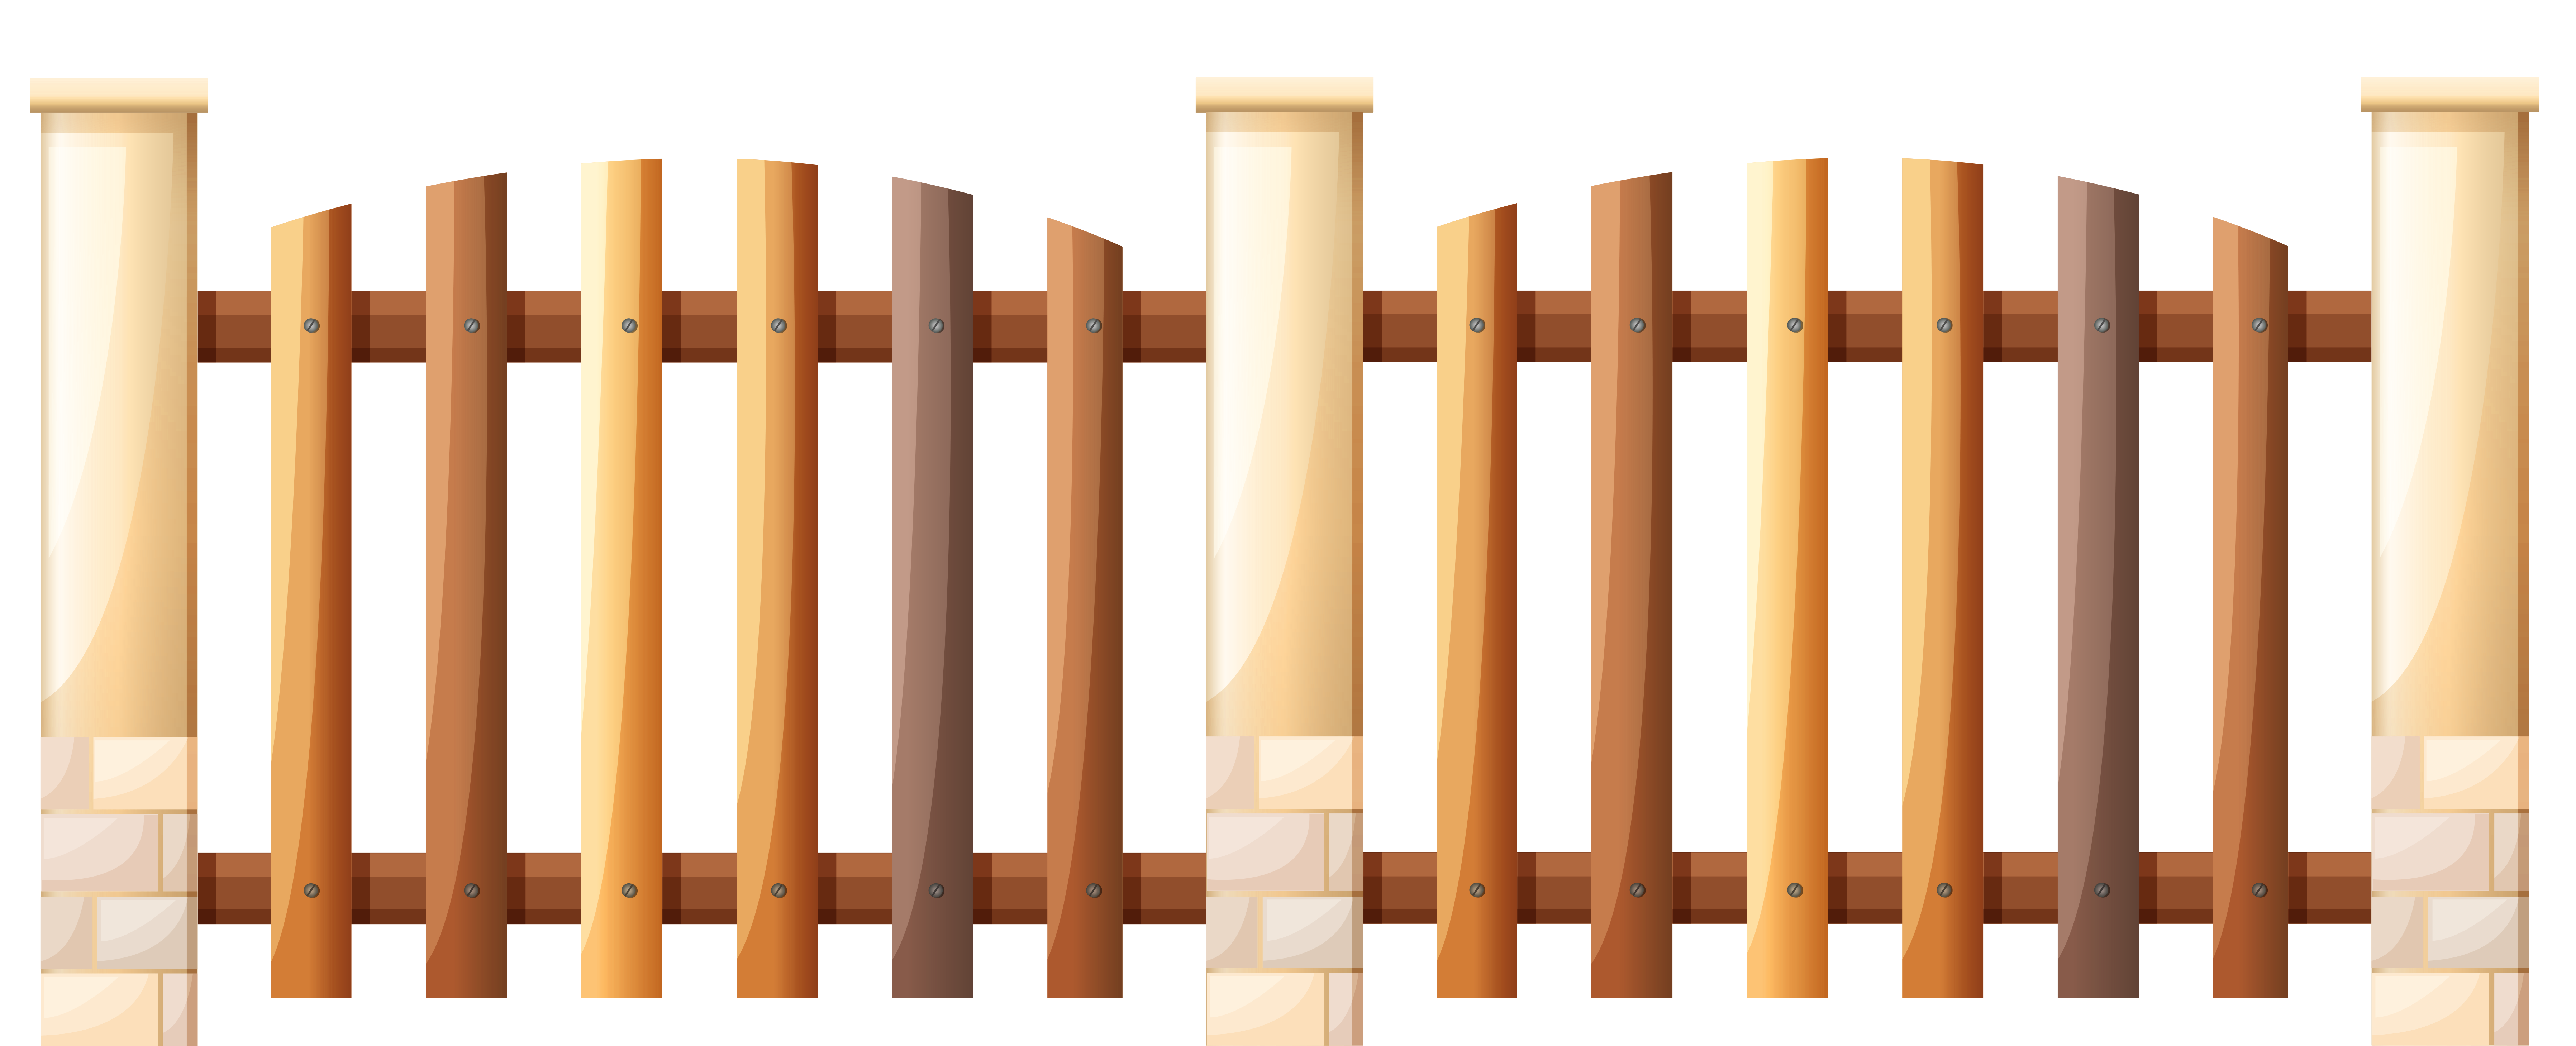 Clipart halloween fence. Wooden yard png gallery